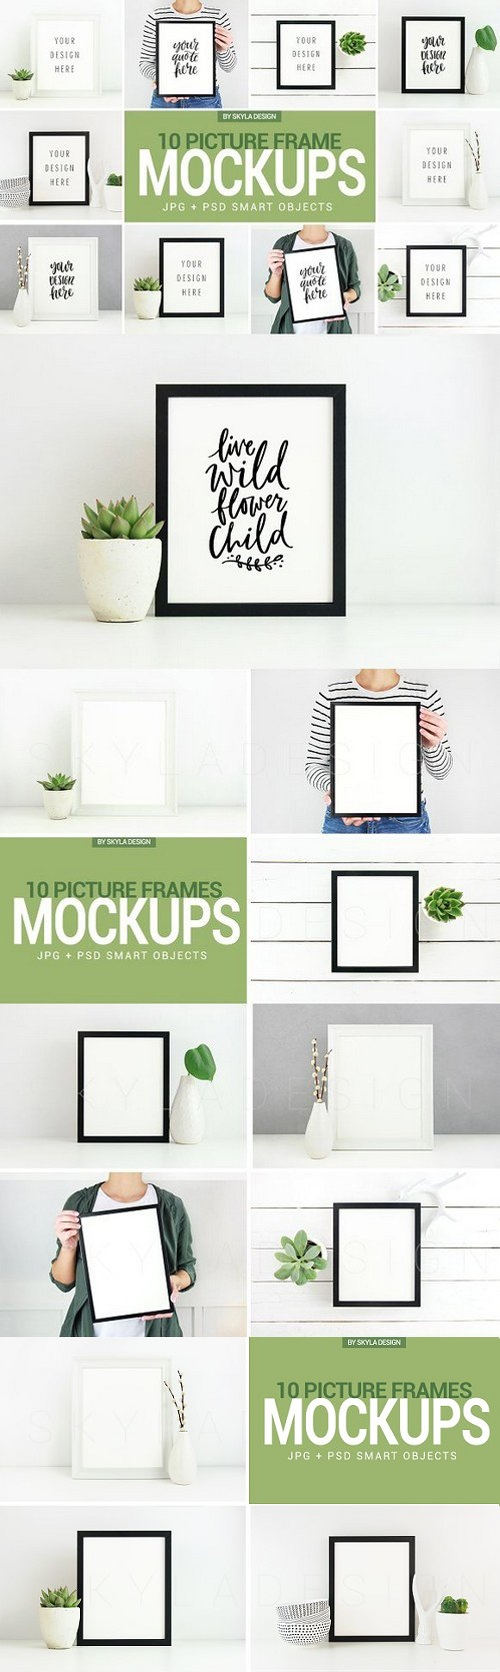 Poster & Picture frame mockup photos 1436427